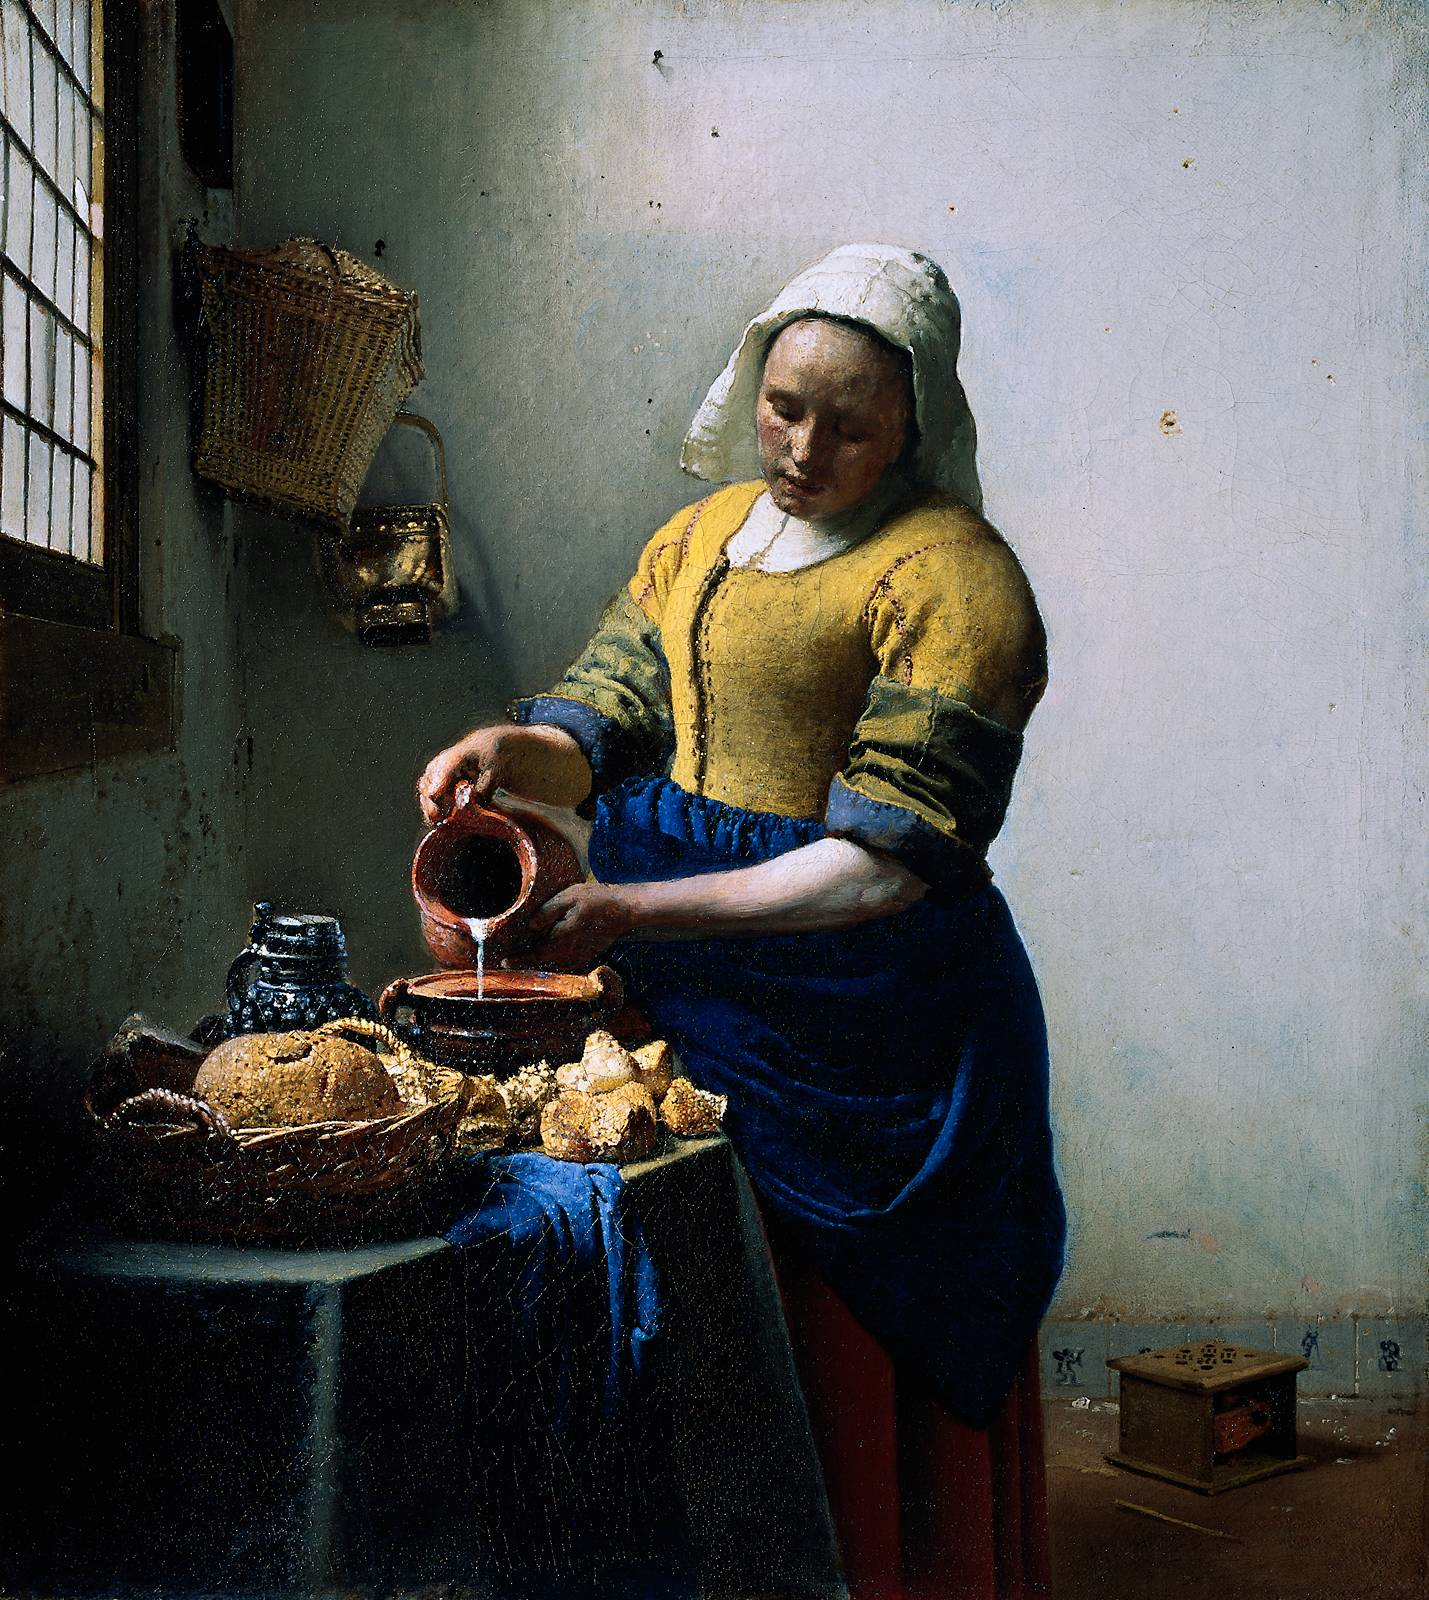 http://www.ibiblio.org/wm/paint/auth/vermeer/kitchen-maid/kitchen-maid.jpg